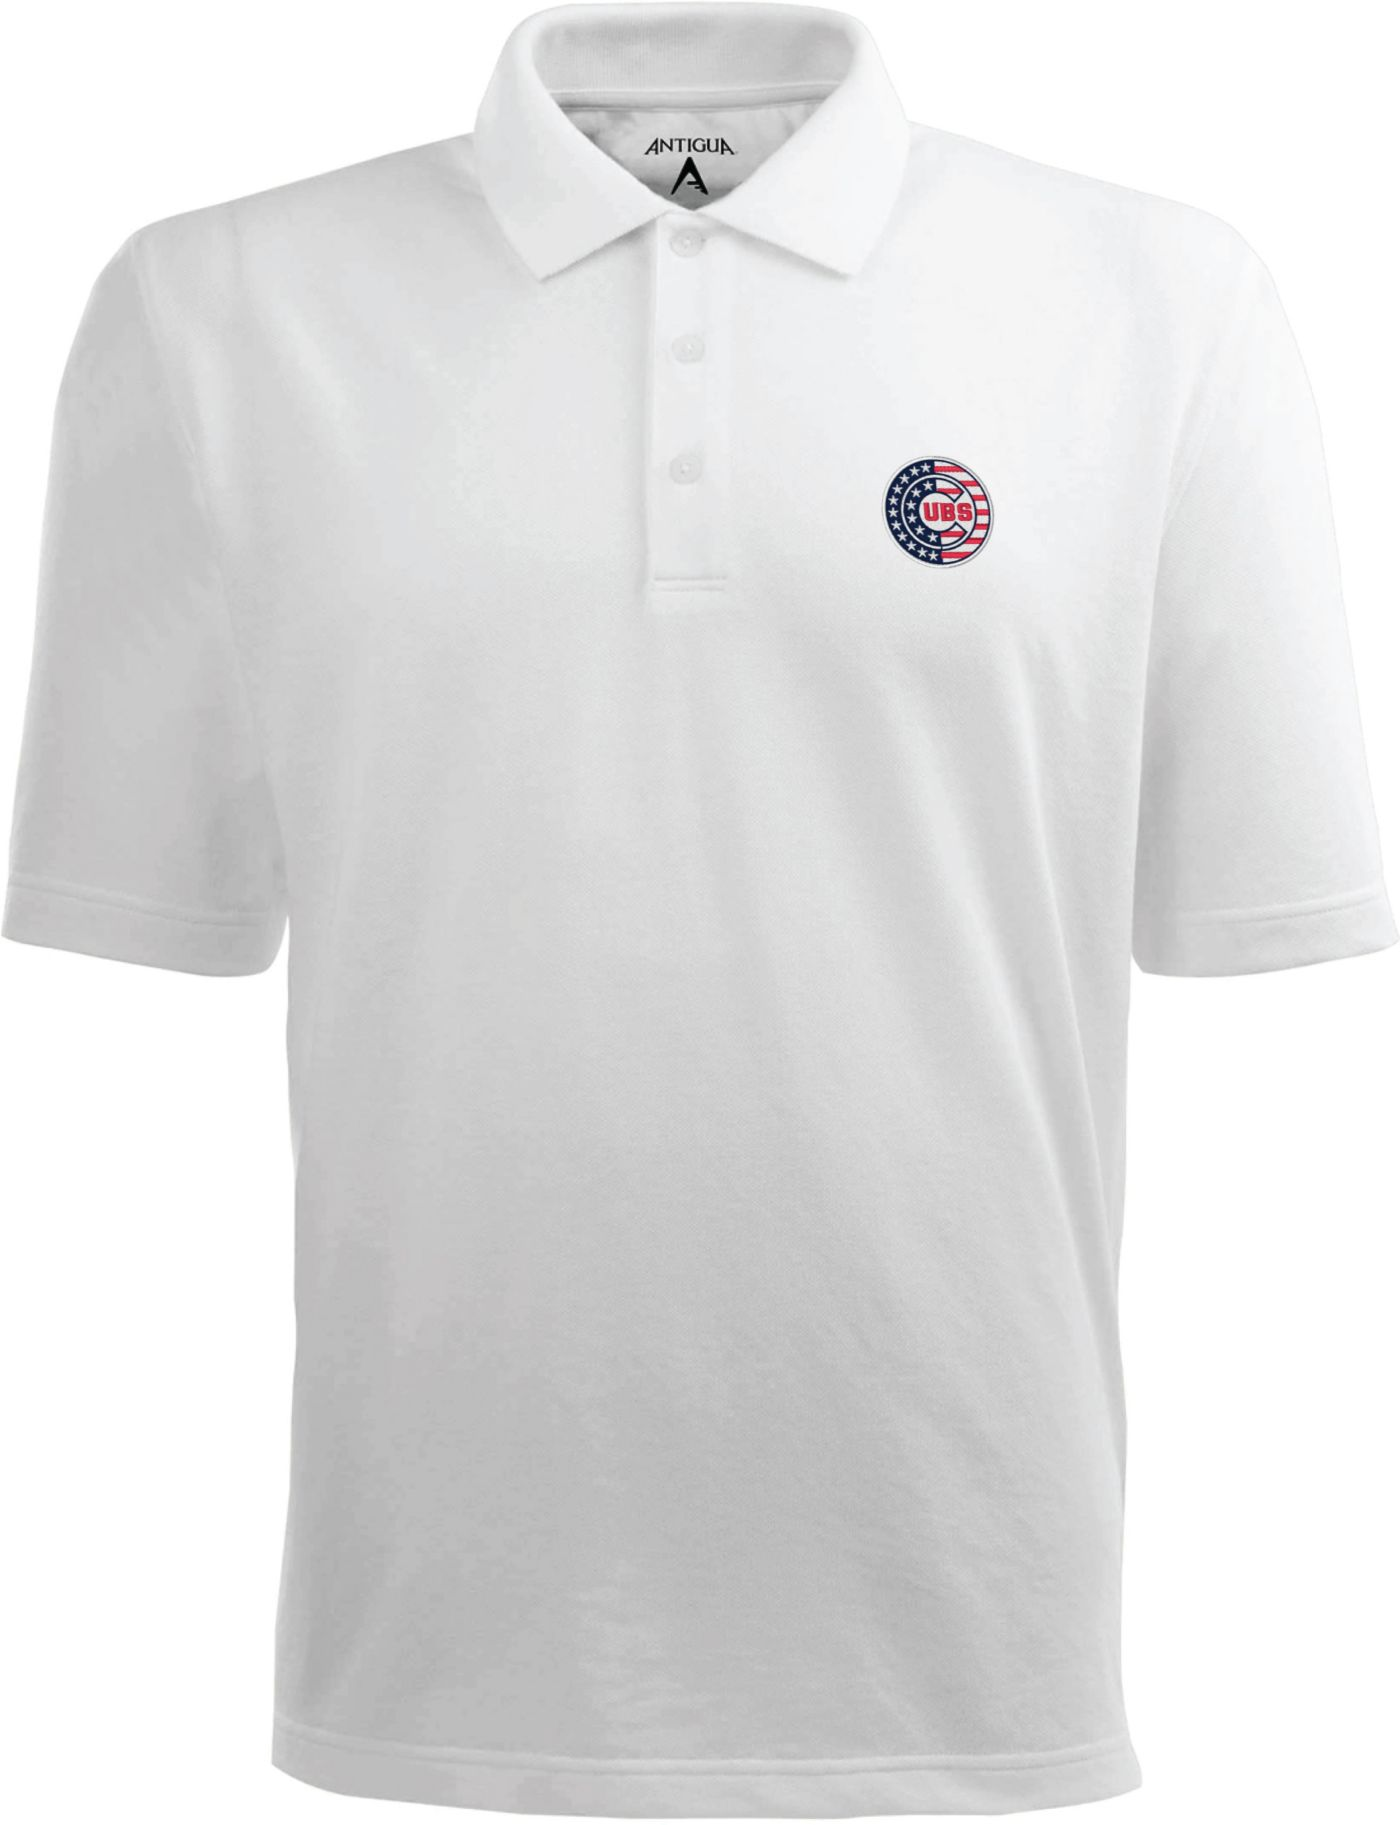 Antigua Men's Chicago Cubs Xtra-Lite Patriotic Logo White Pique Performance Polo